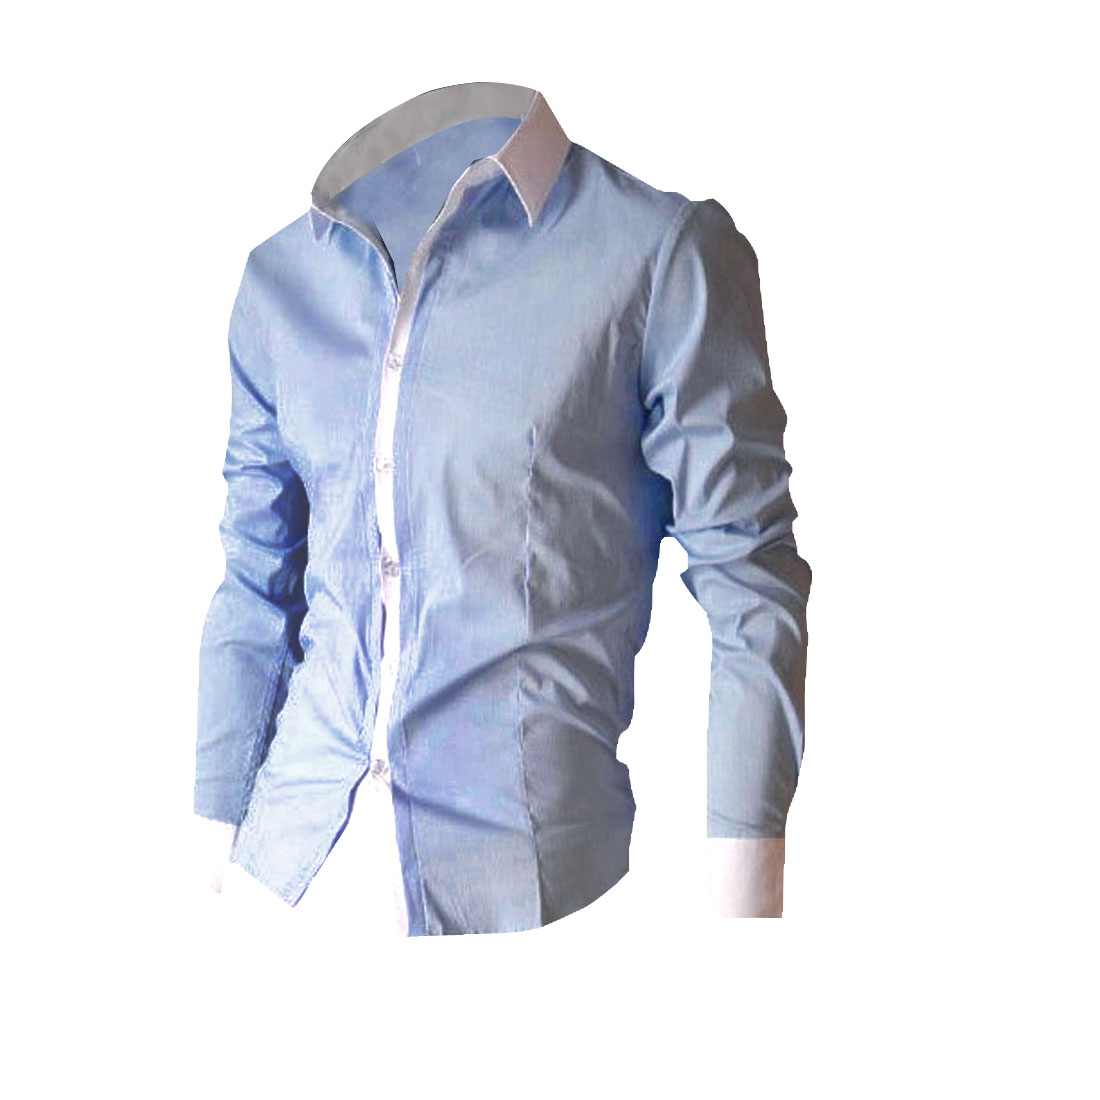 Mens NEW Trendy Light Blue Casual Single Breasted Formfitting Shirt Tops S